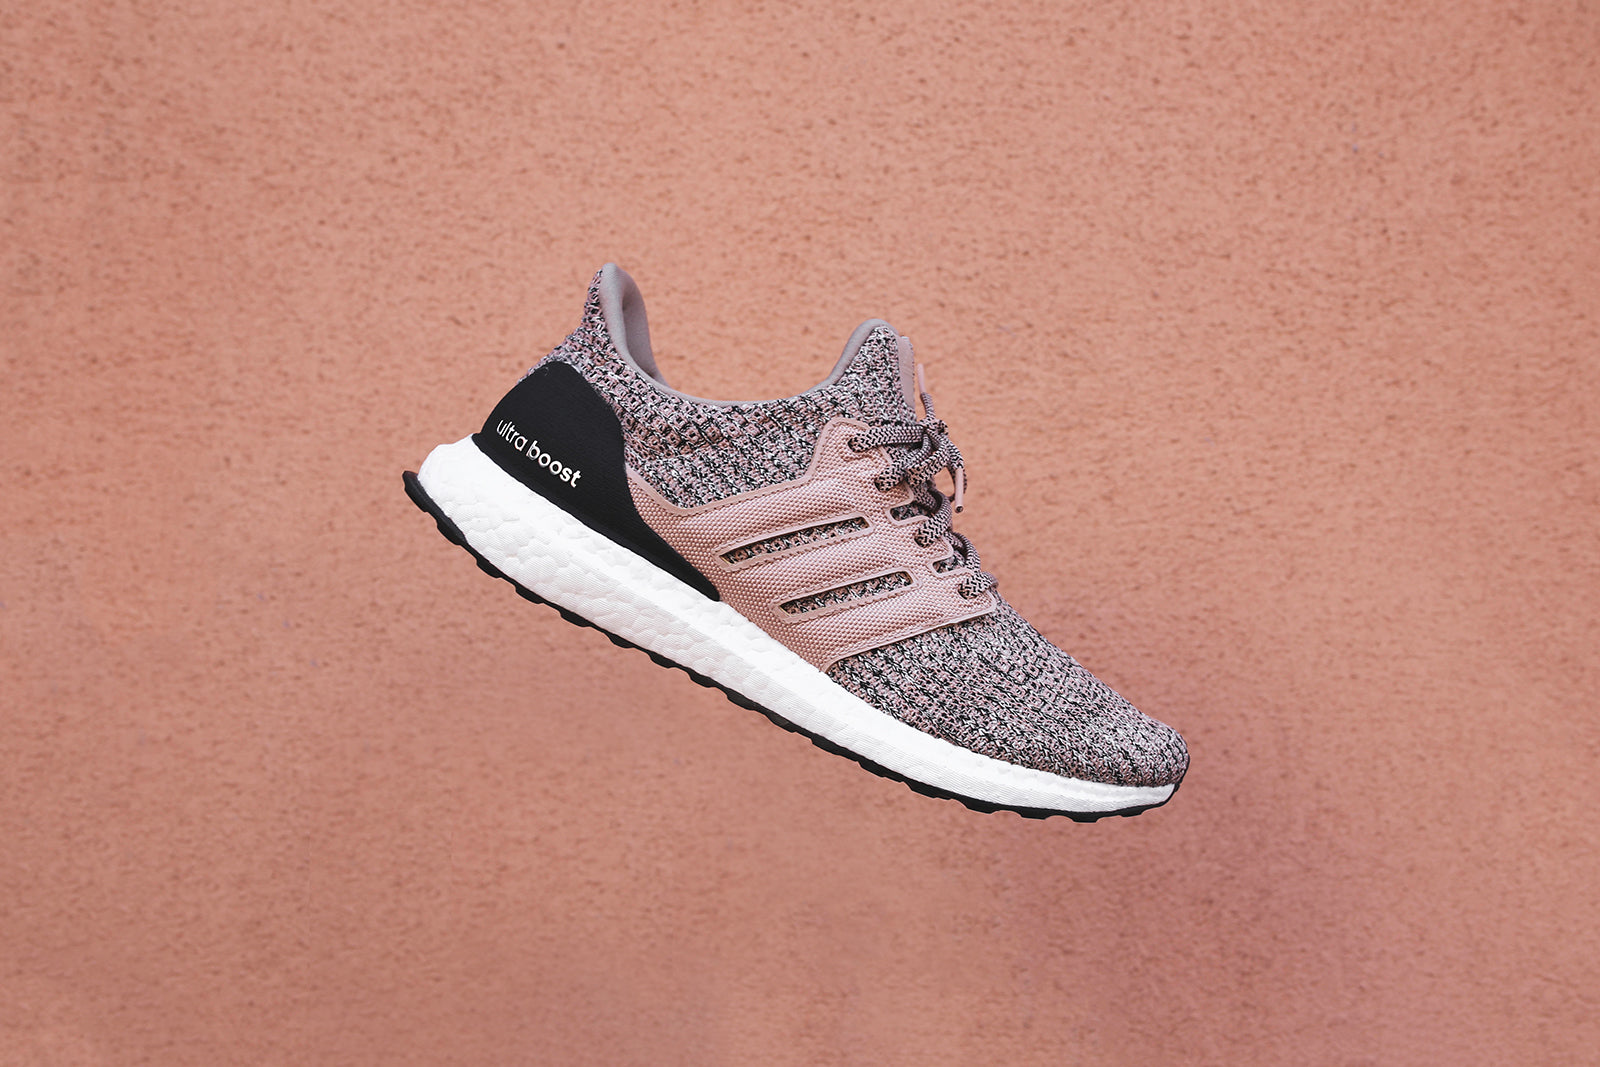 separation shoes ded82 6c9ea adidas UltraBoost 4.0 - Grey / White